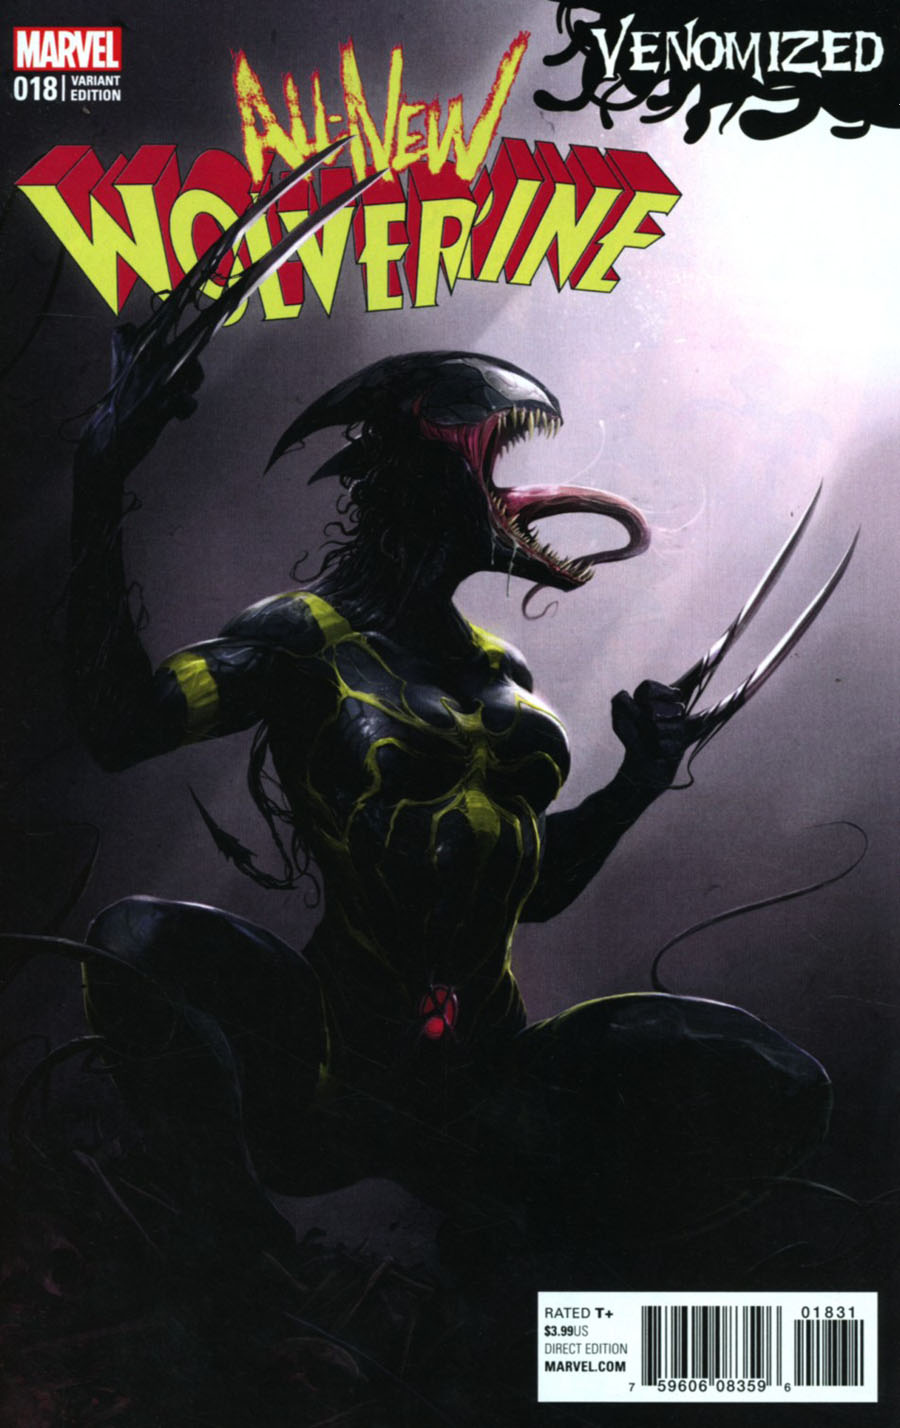 All-New Wolverine #18 Cover C Variant Francesco Mattina Venomized Cover